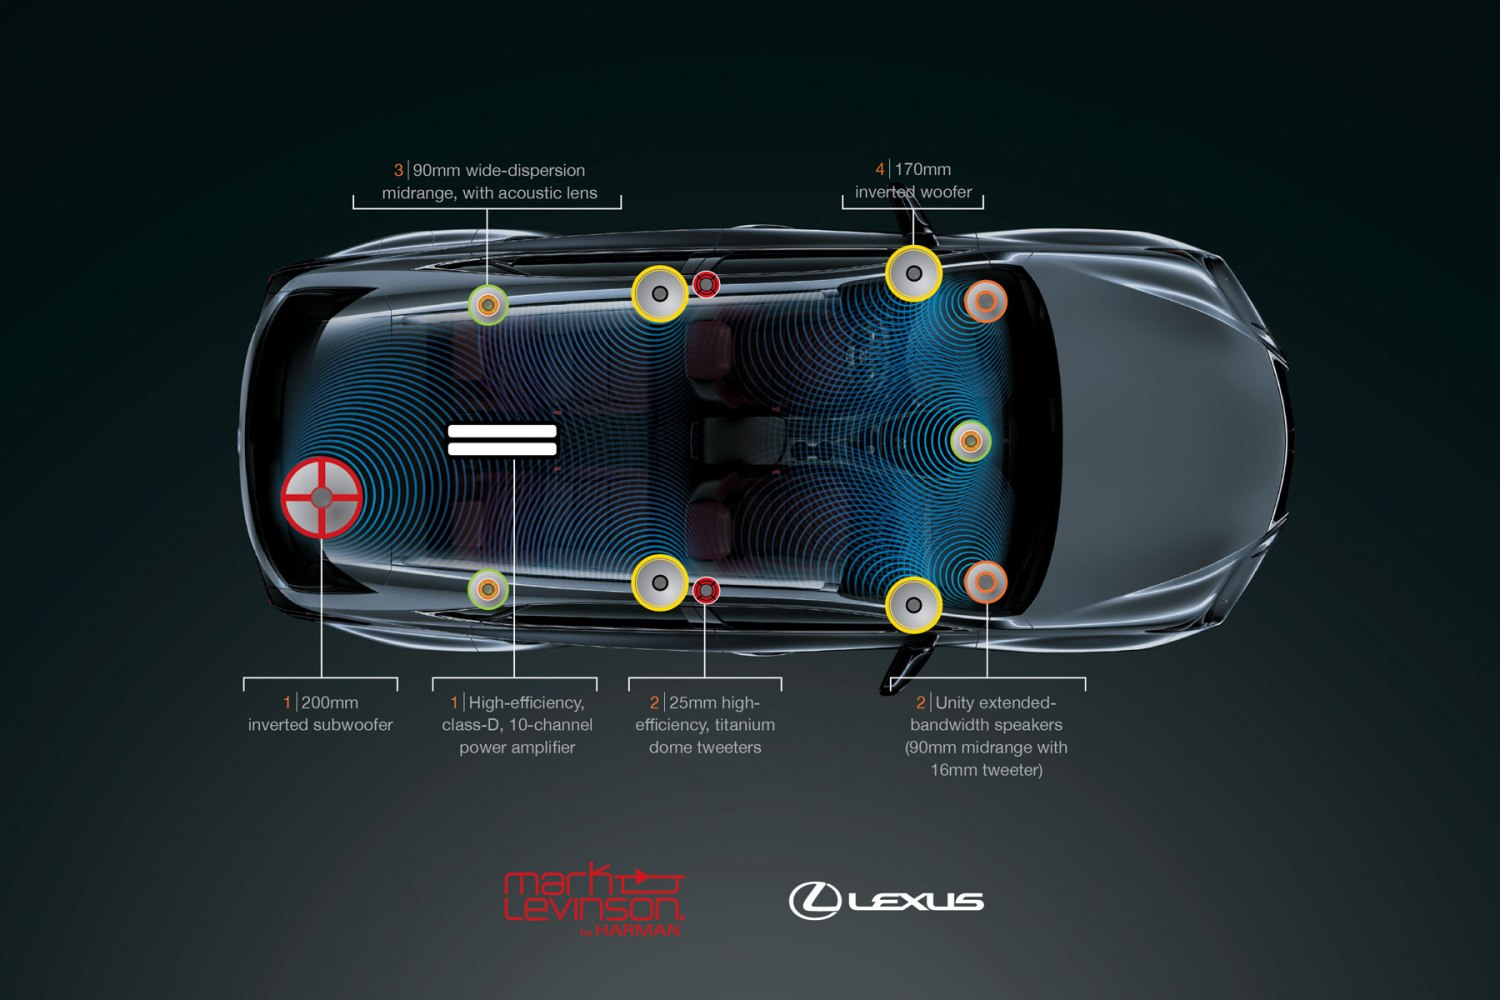 Sounds great: 20 of the best in-car audio systems | Motoring Research